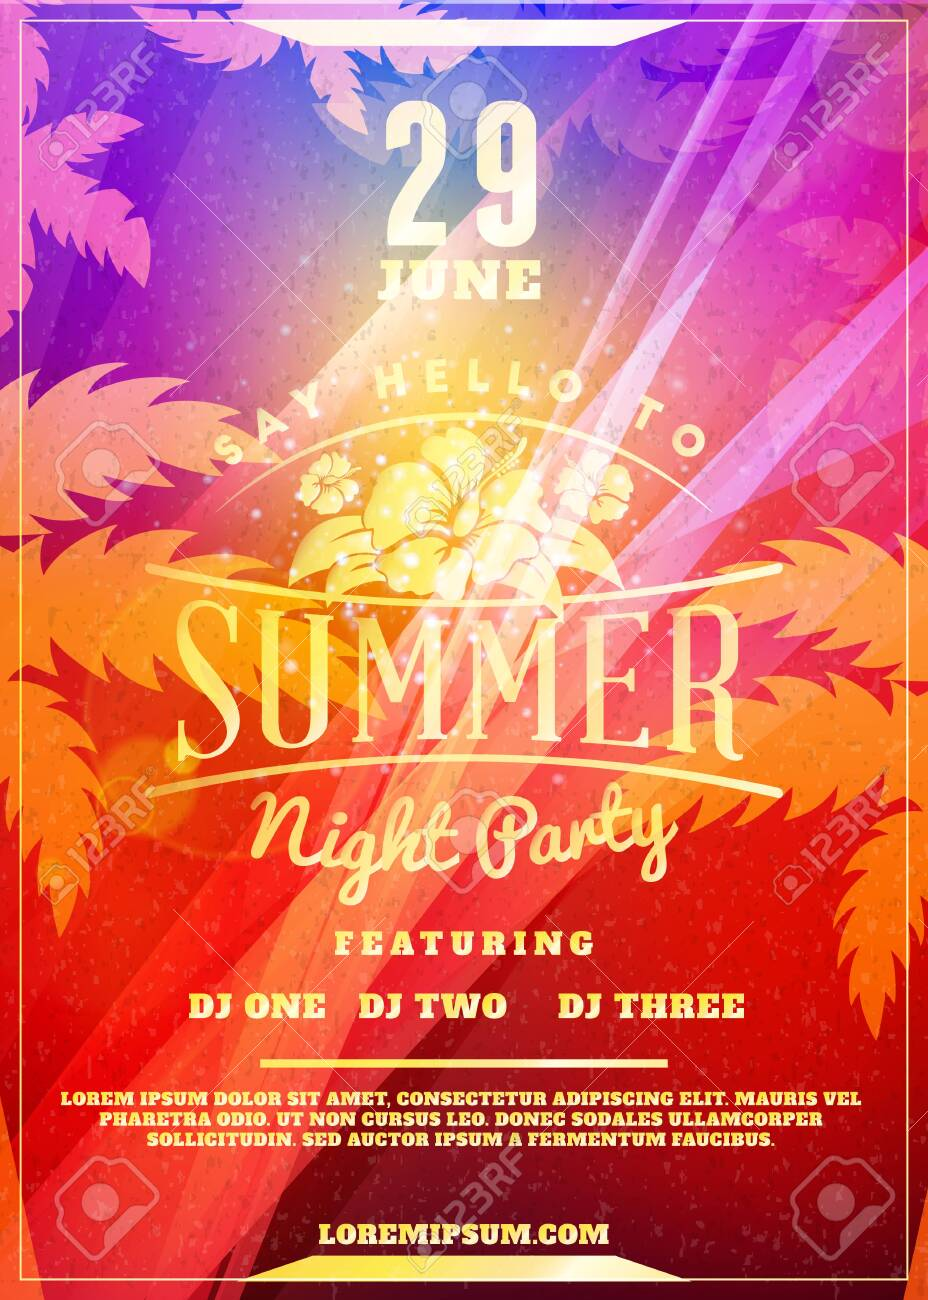 Summer night party flyer or poster. Vector design template with colorful abstract background - 123748545